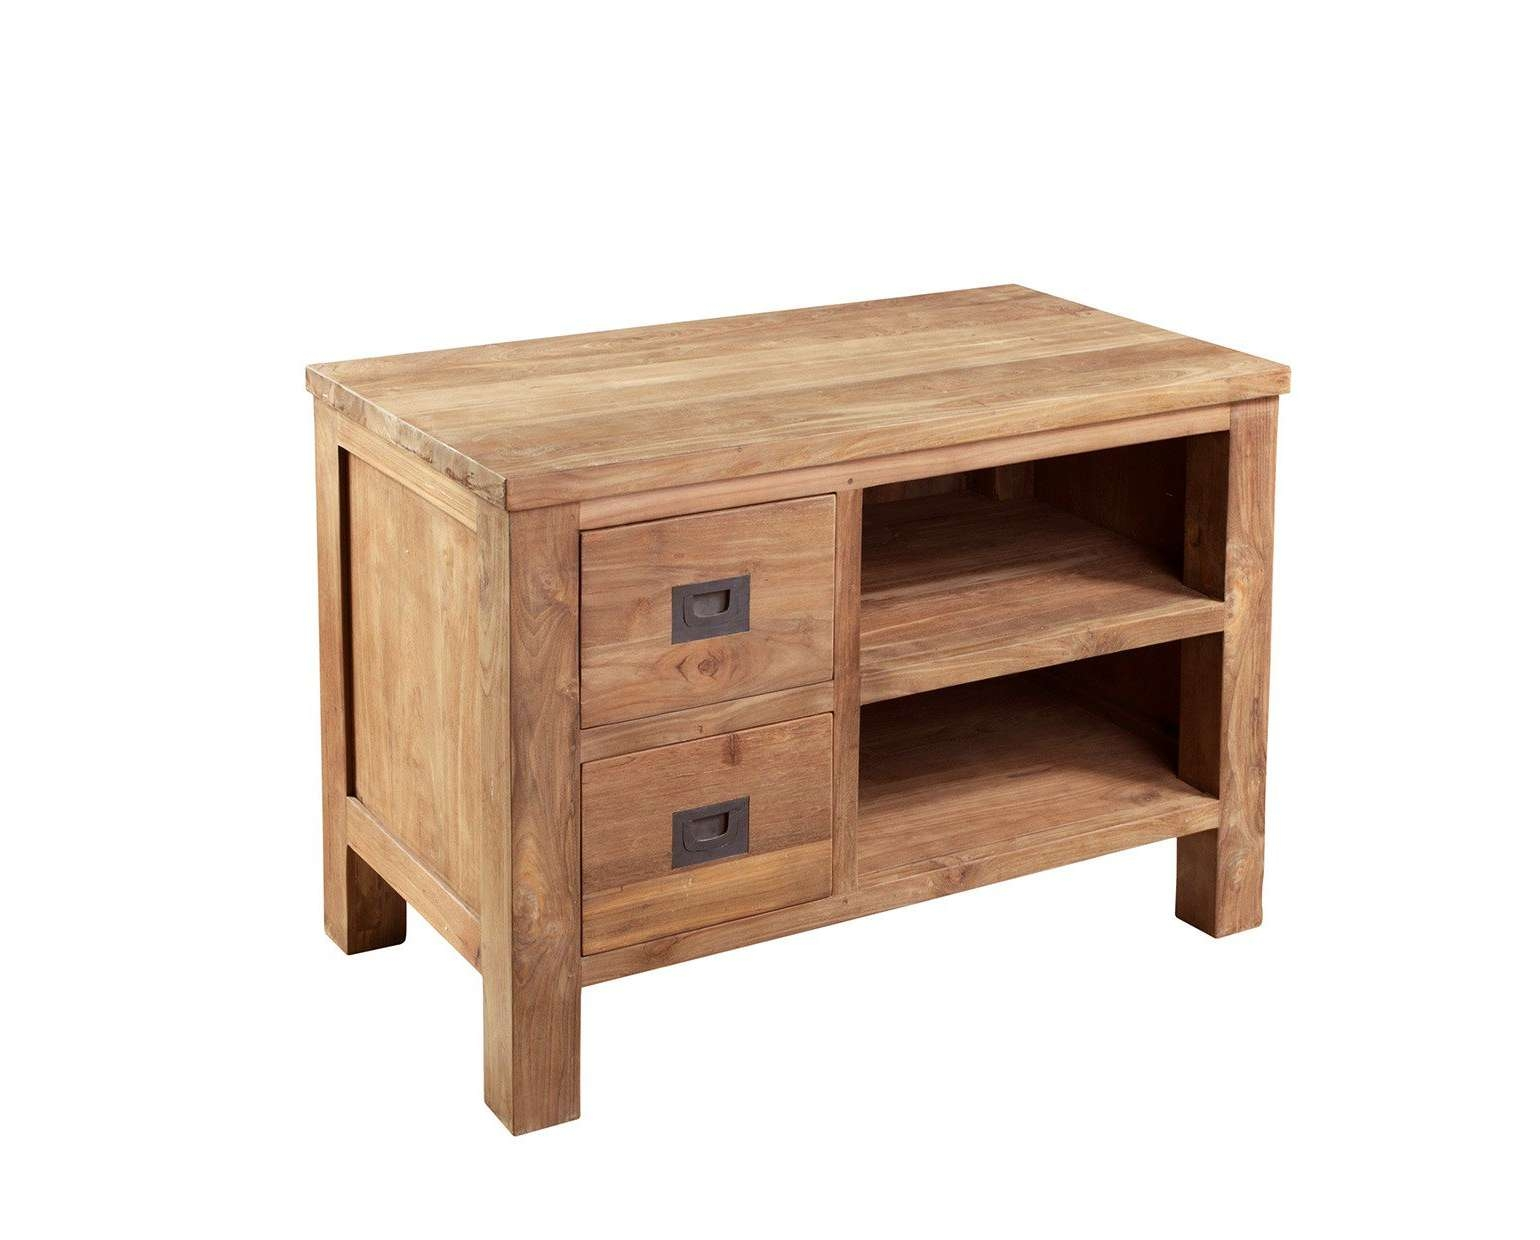 Lifestyle Tv Cabinet Small – Raft Furniture, London With Regard To Small Tv Cabinets (View 3 of 20)